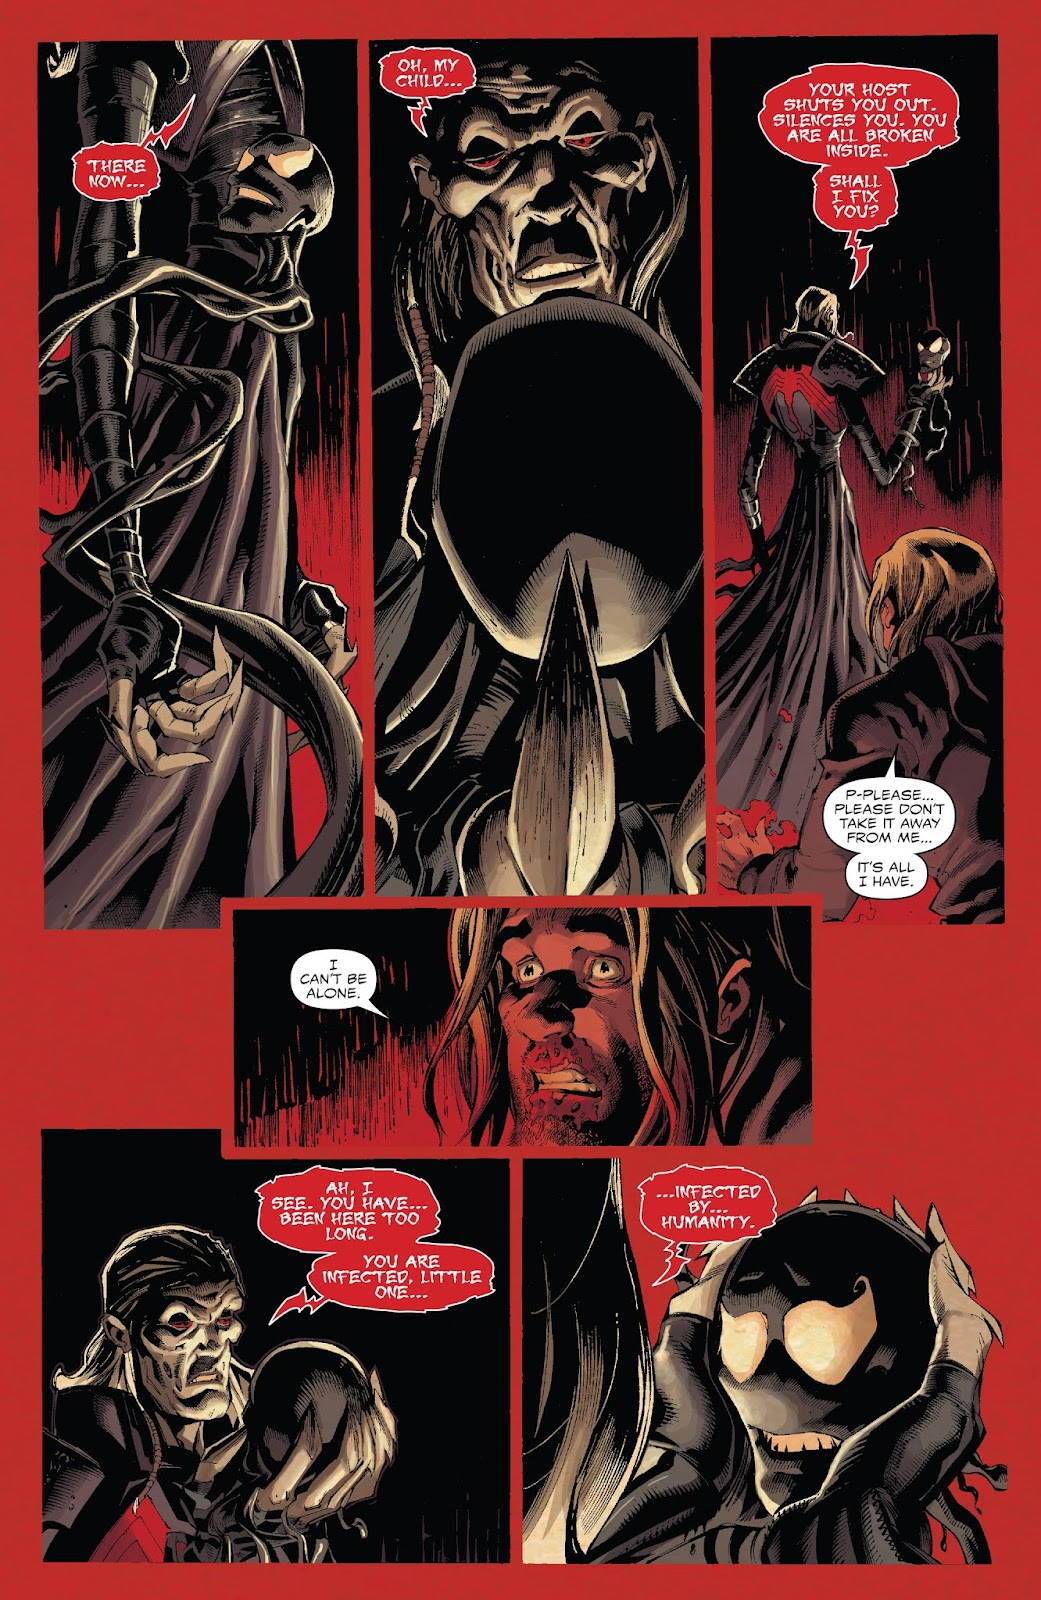 Venom #3] It really seems like Cates is shitting on the lore